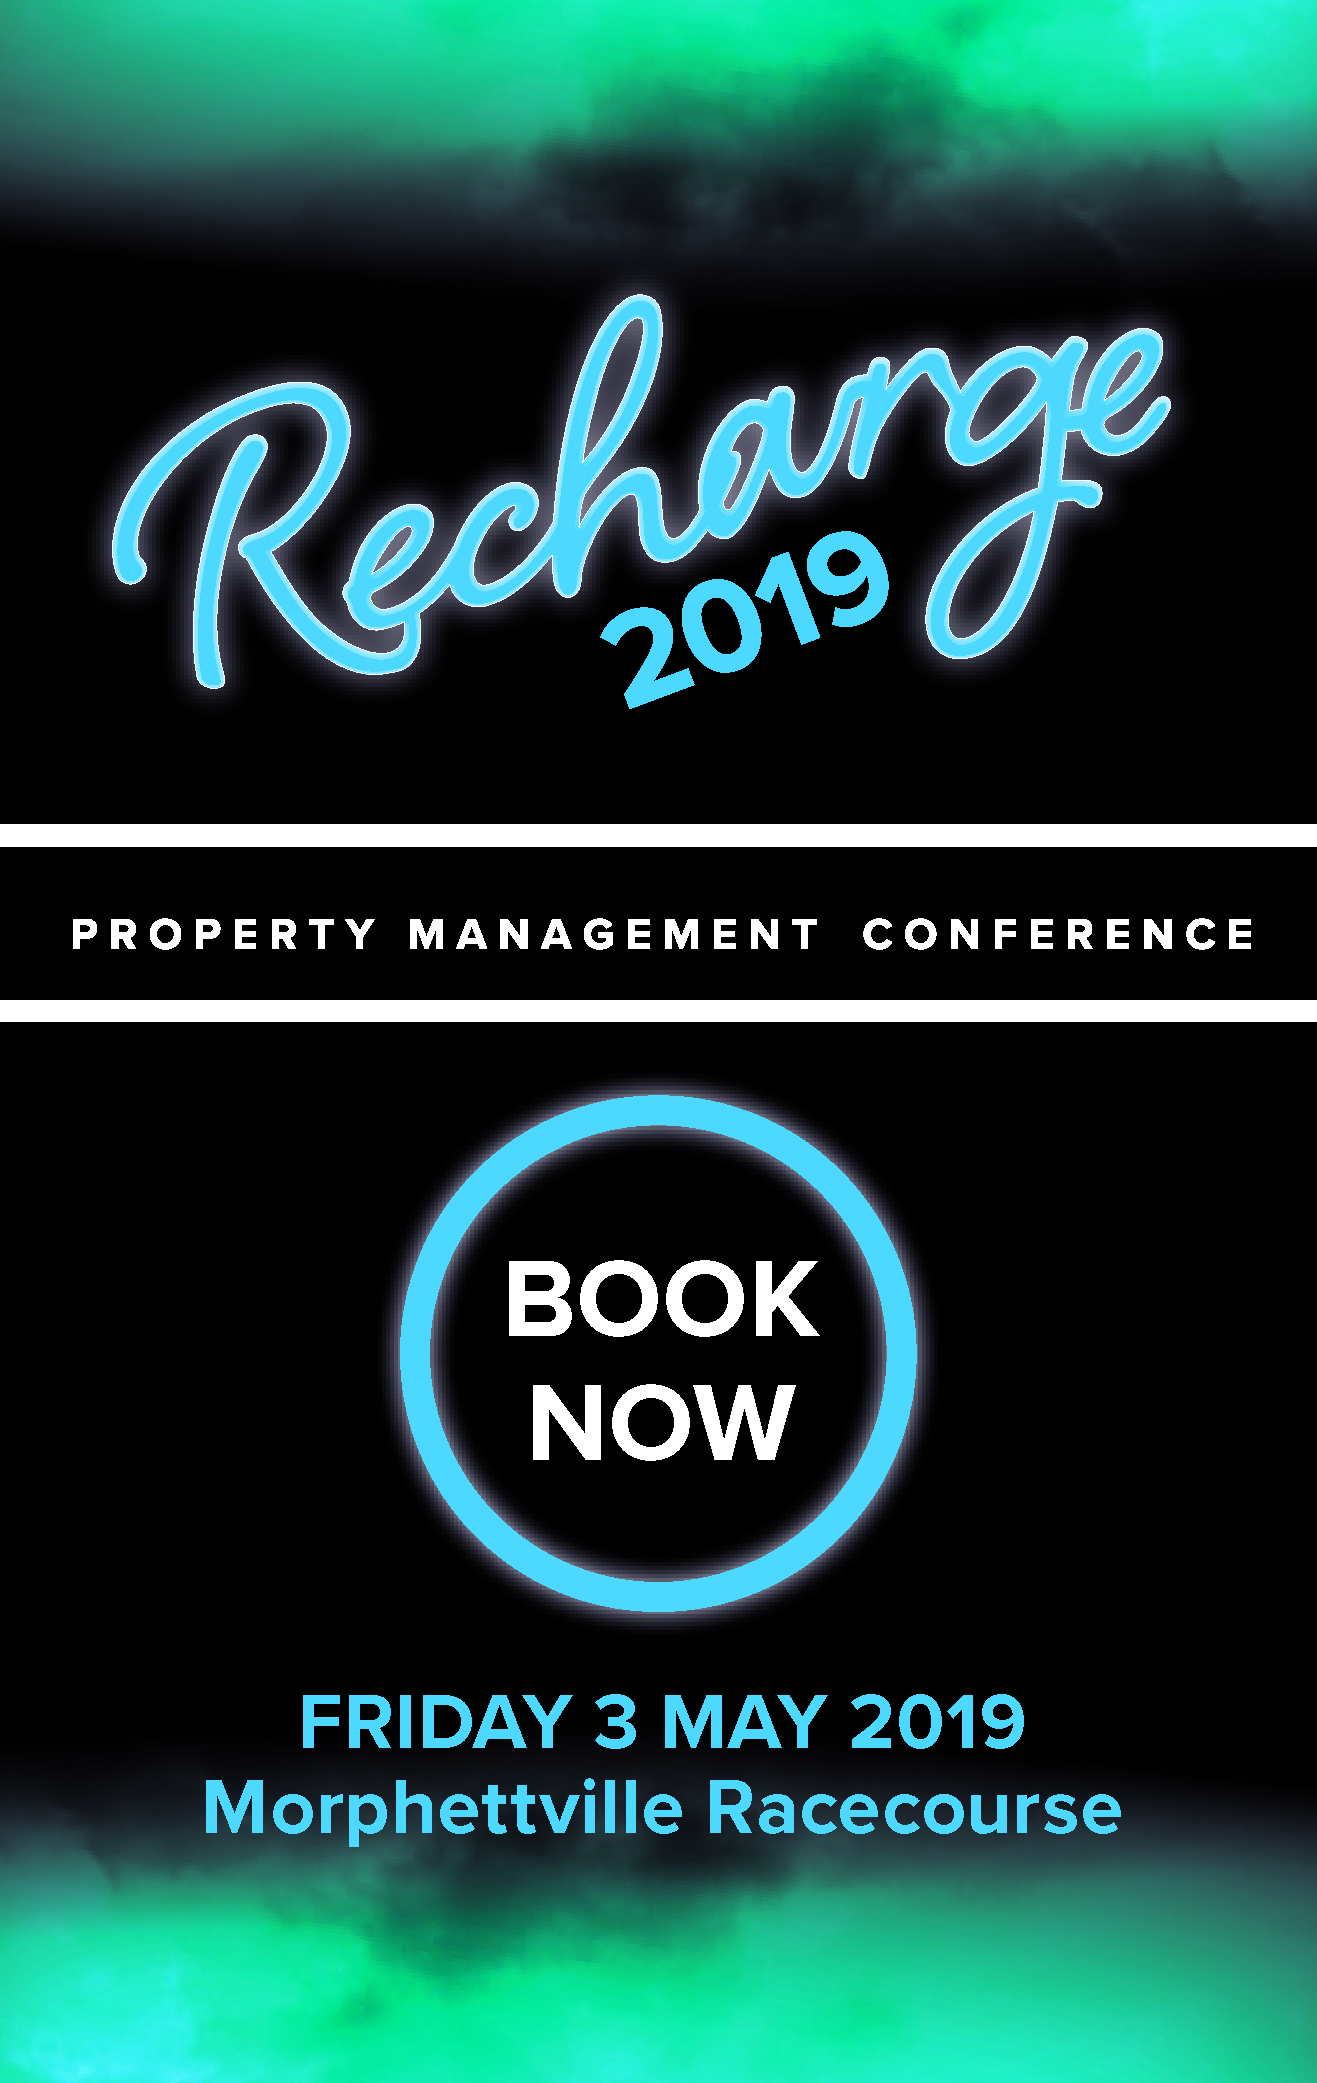 PM Conference Book Now - Side Banner